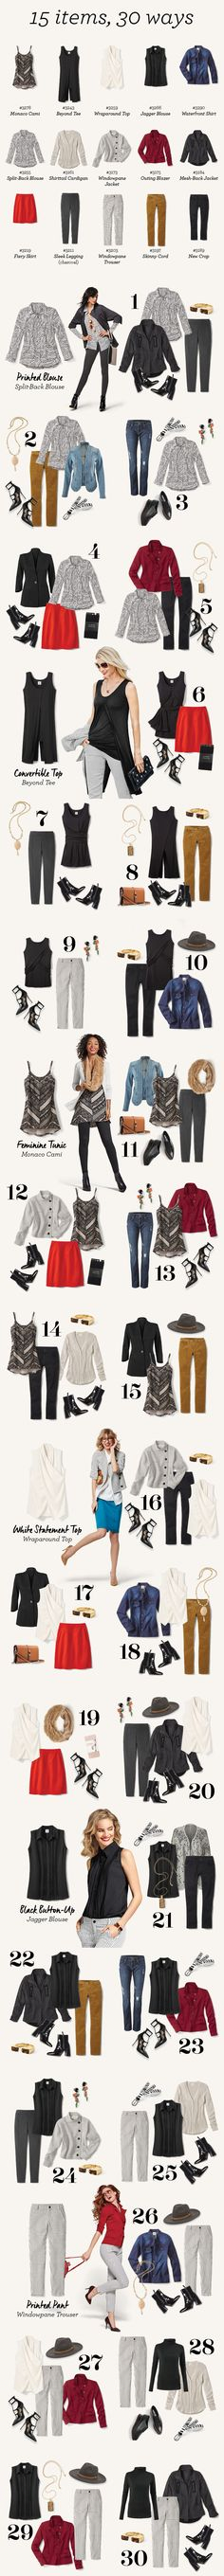 Check out this wardrobe capsule for 15 cabi fall items that you can wear 30 different ways!